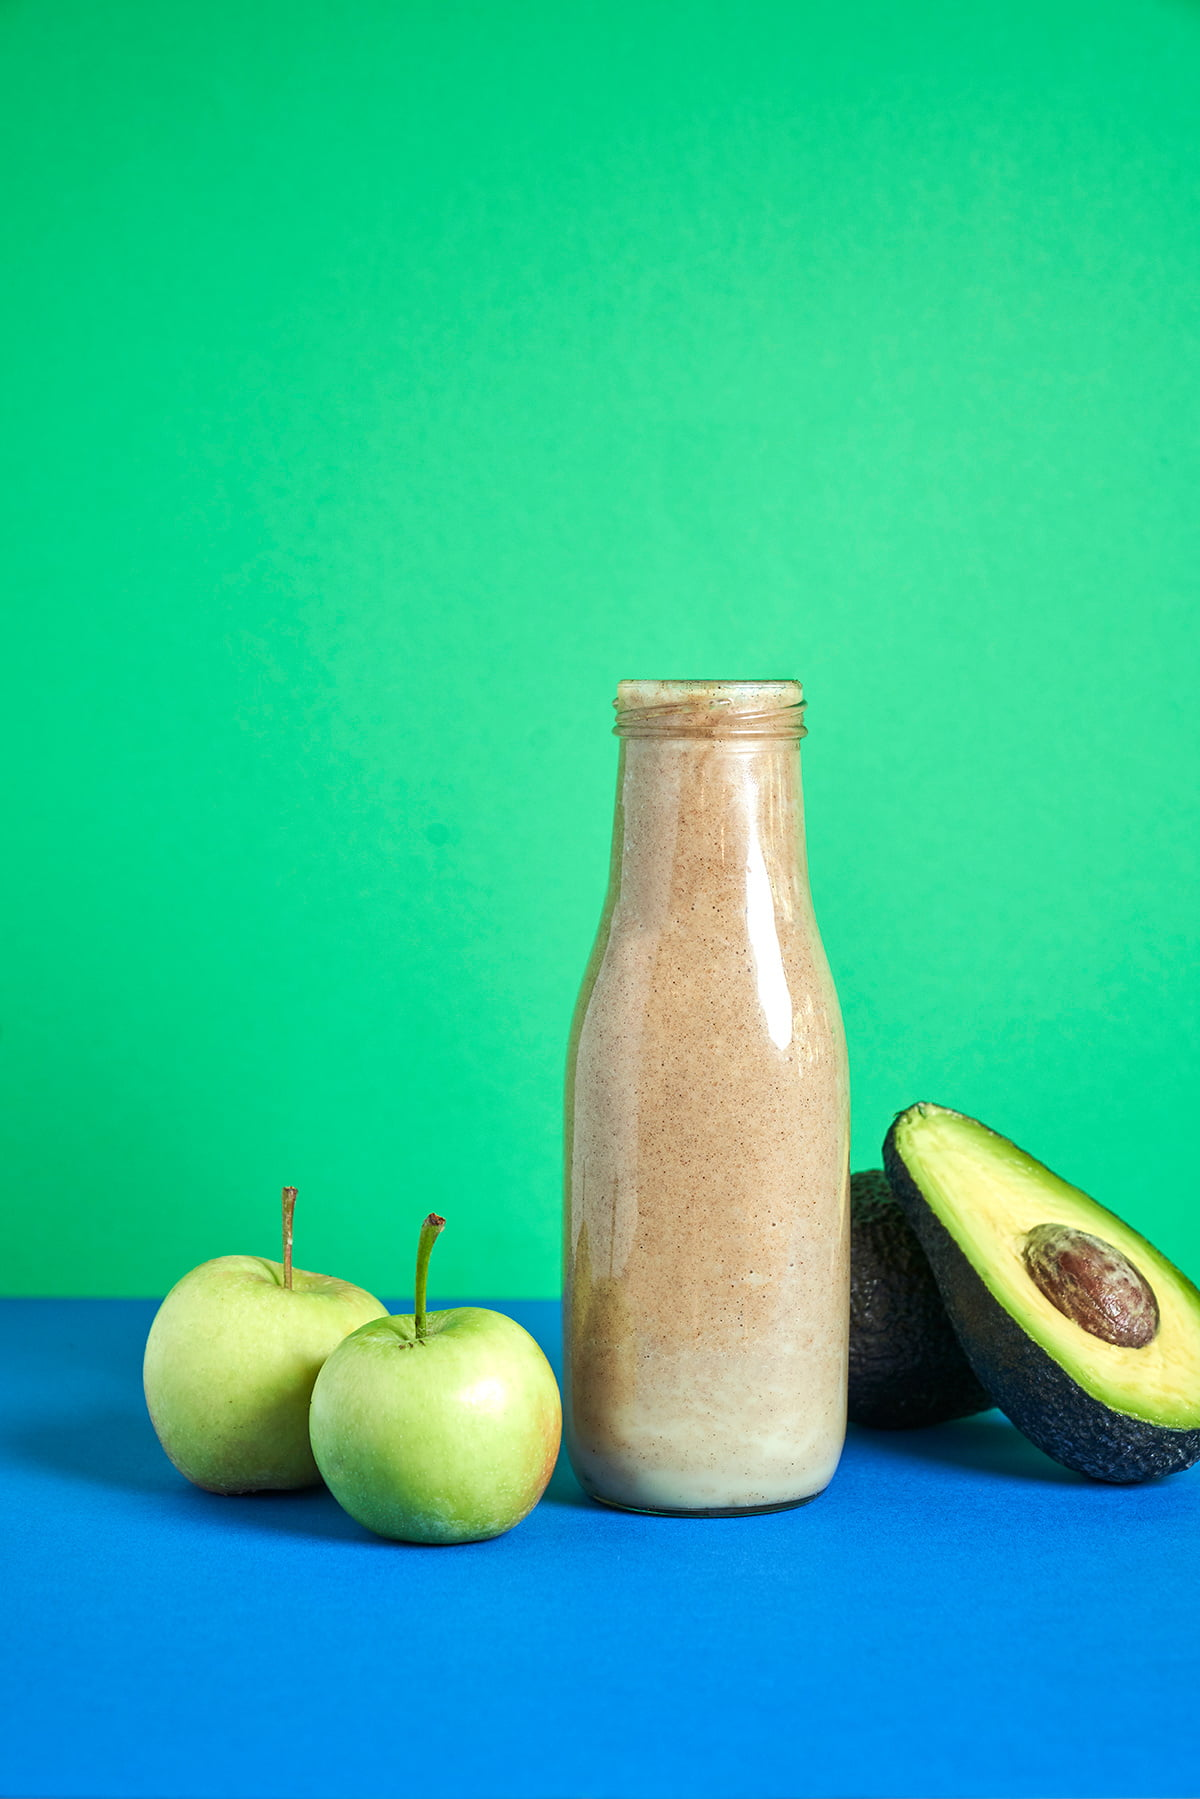 SMOOTHIE OF THE MONTH – GREEN CREAM